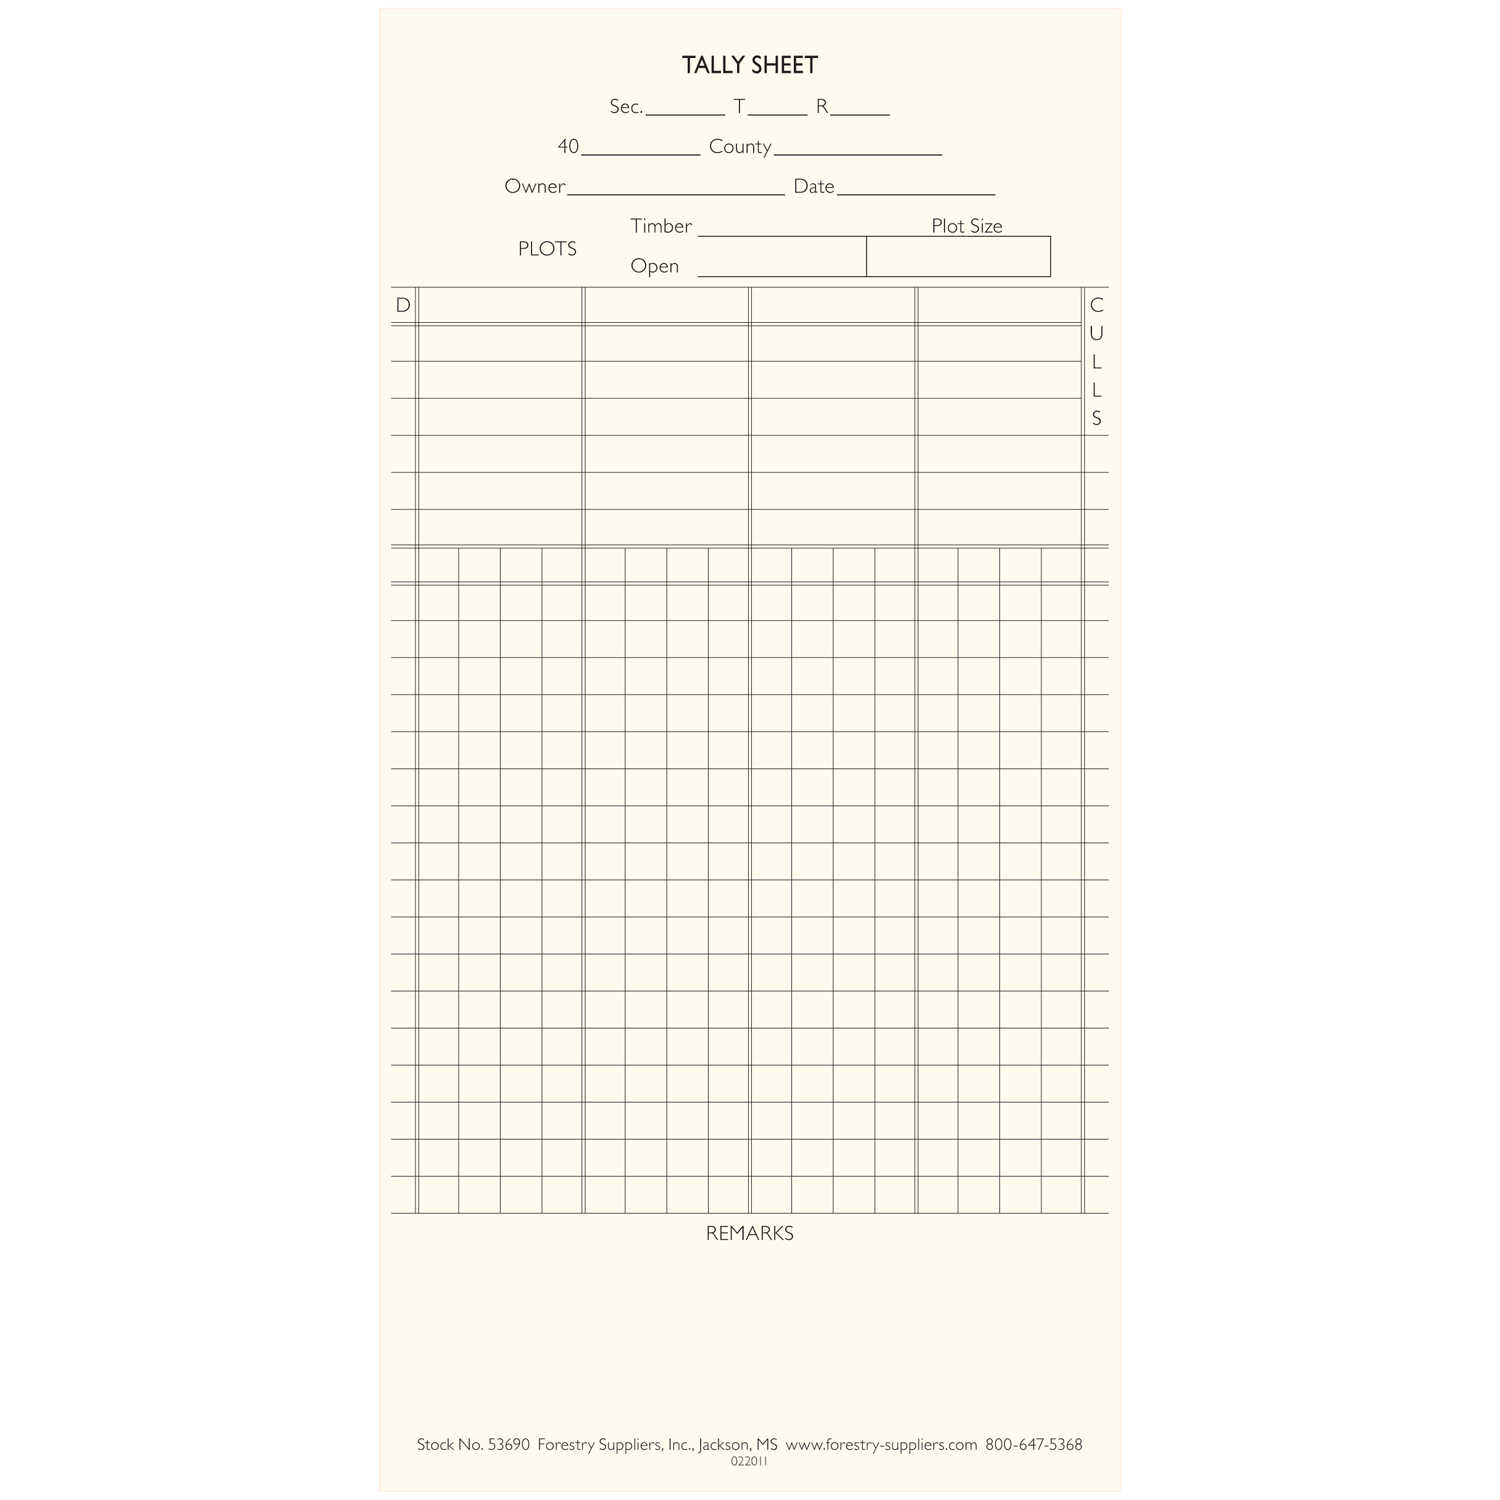 Pipe Tally Spreadsheet Inside Tally Sheets For Tall  Forestry Suppliers, Inc.